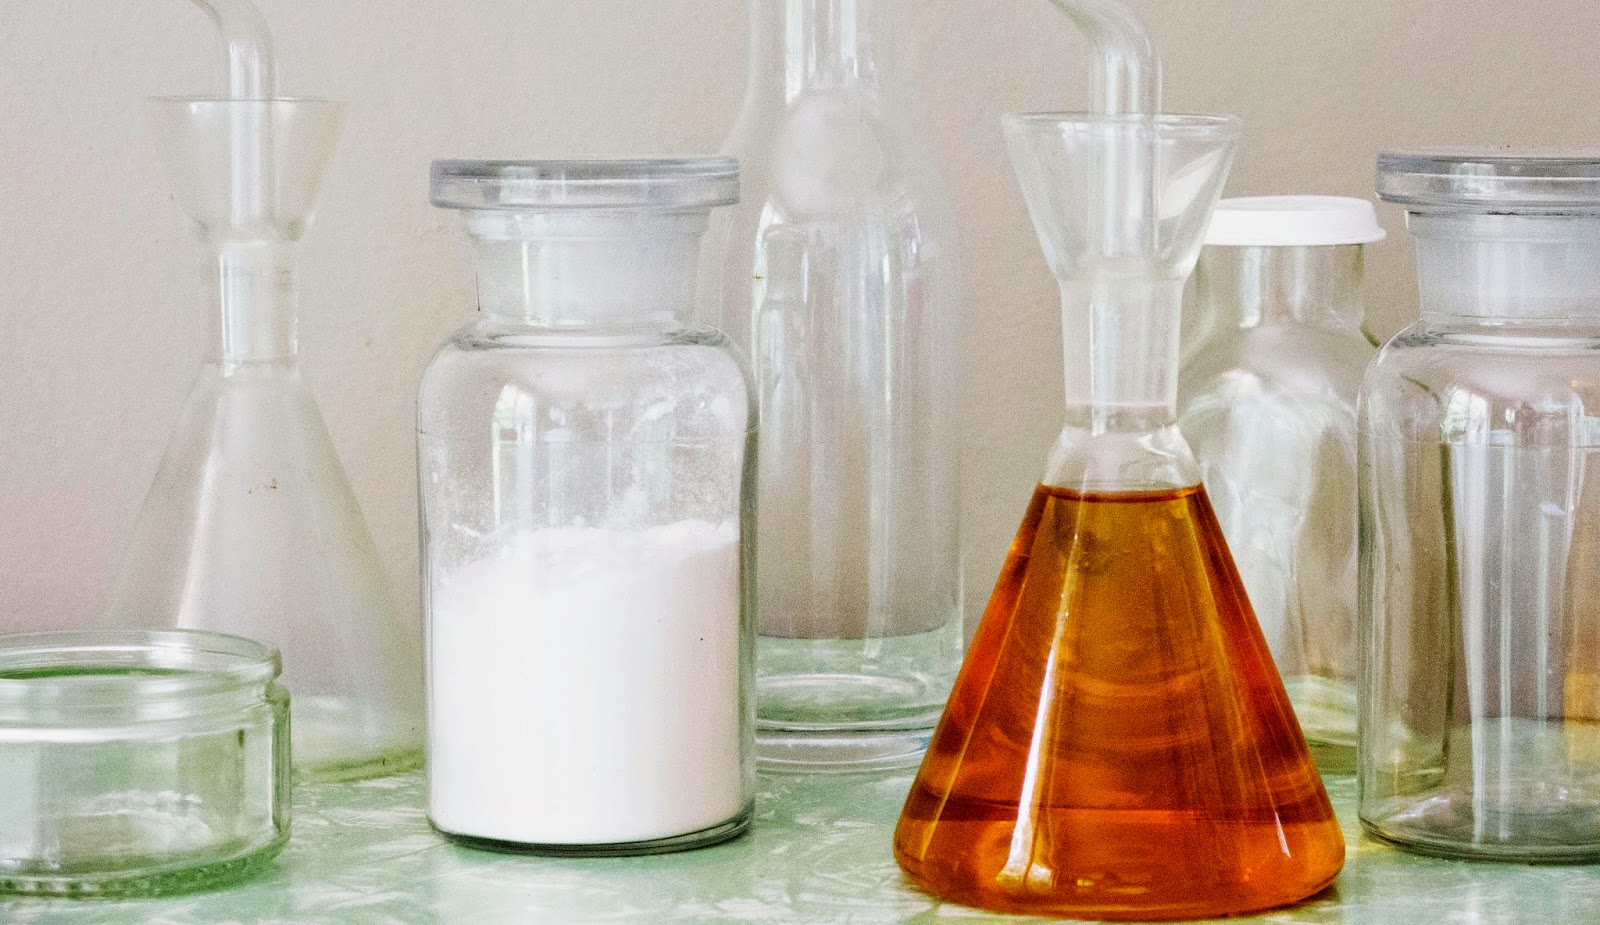 http://dashfieldvintage.blogspot.co.nz/2014/04/how-to-wash-your-hair-with-baking-soda.html